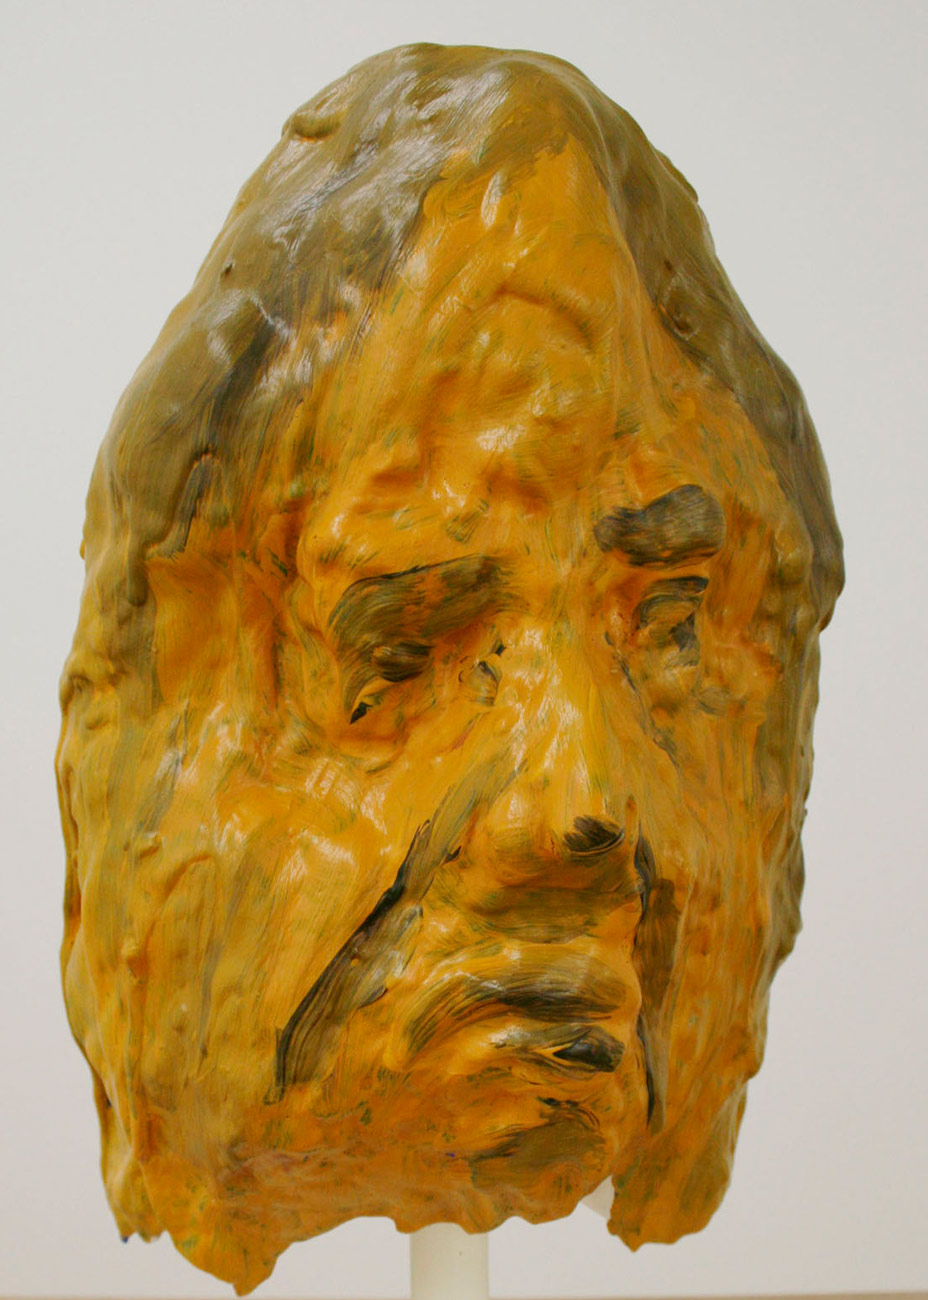 sam-porritt-untitled-(head)